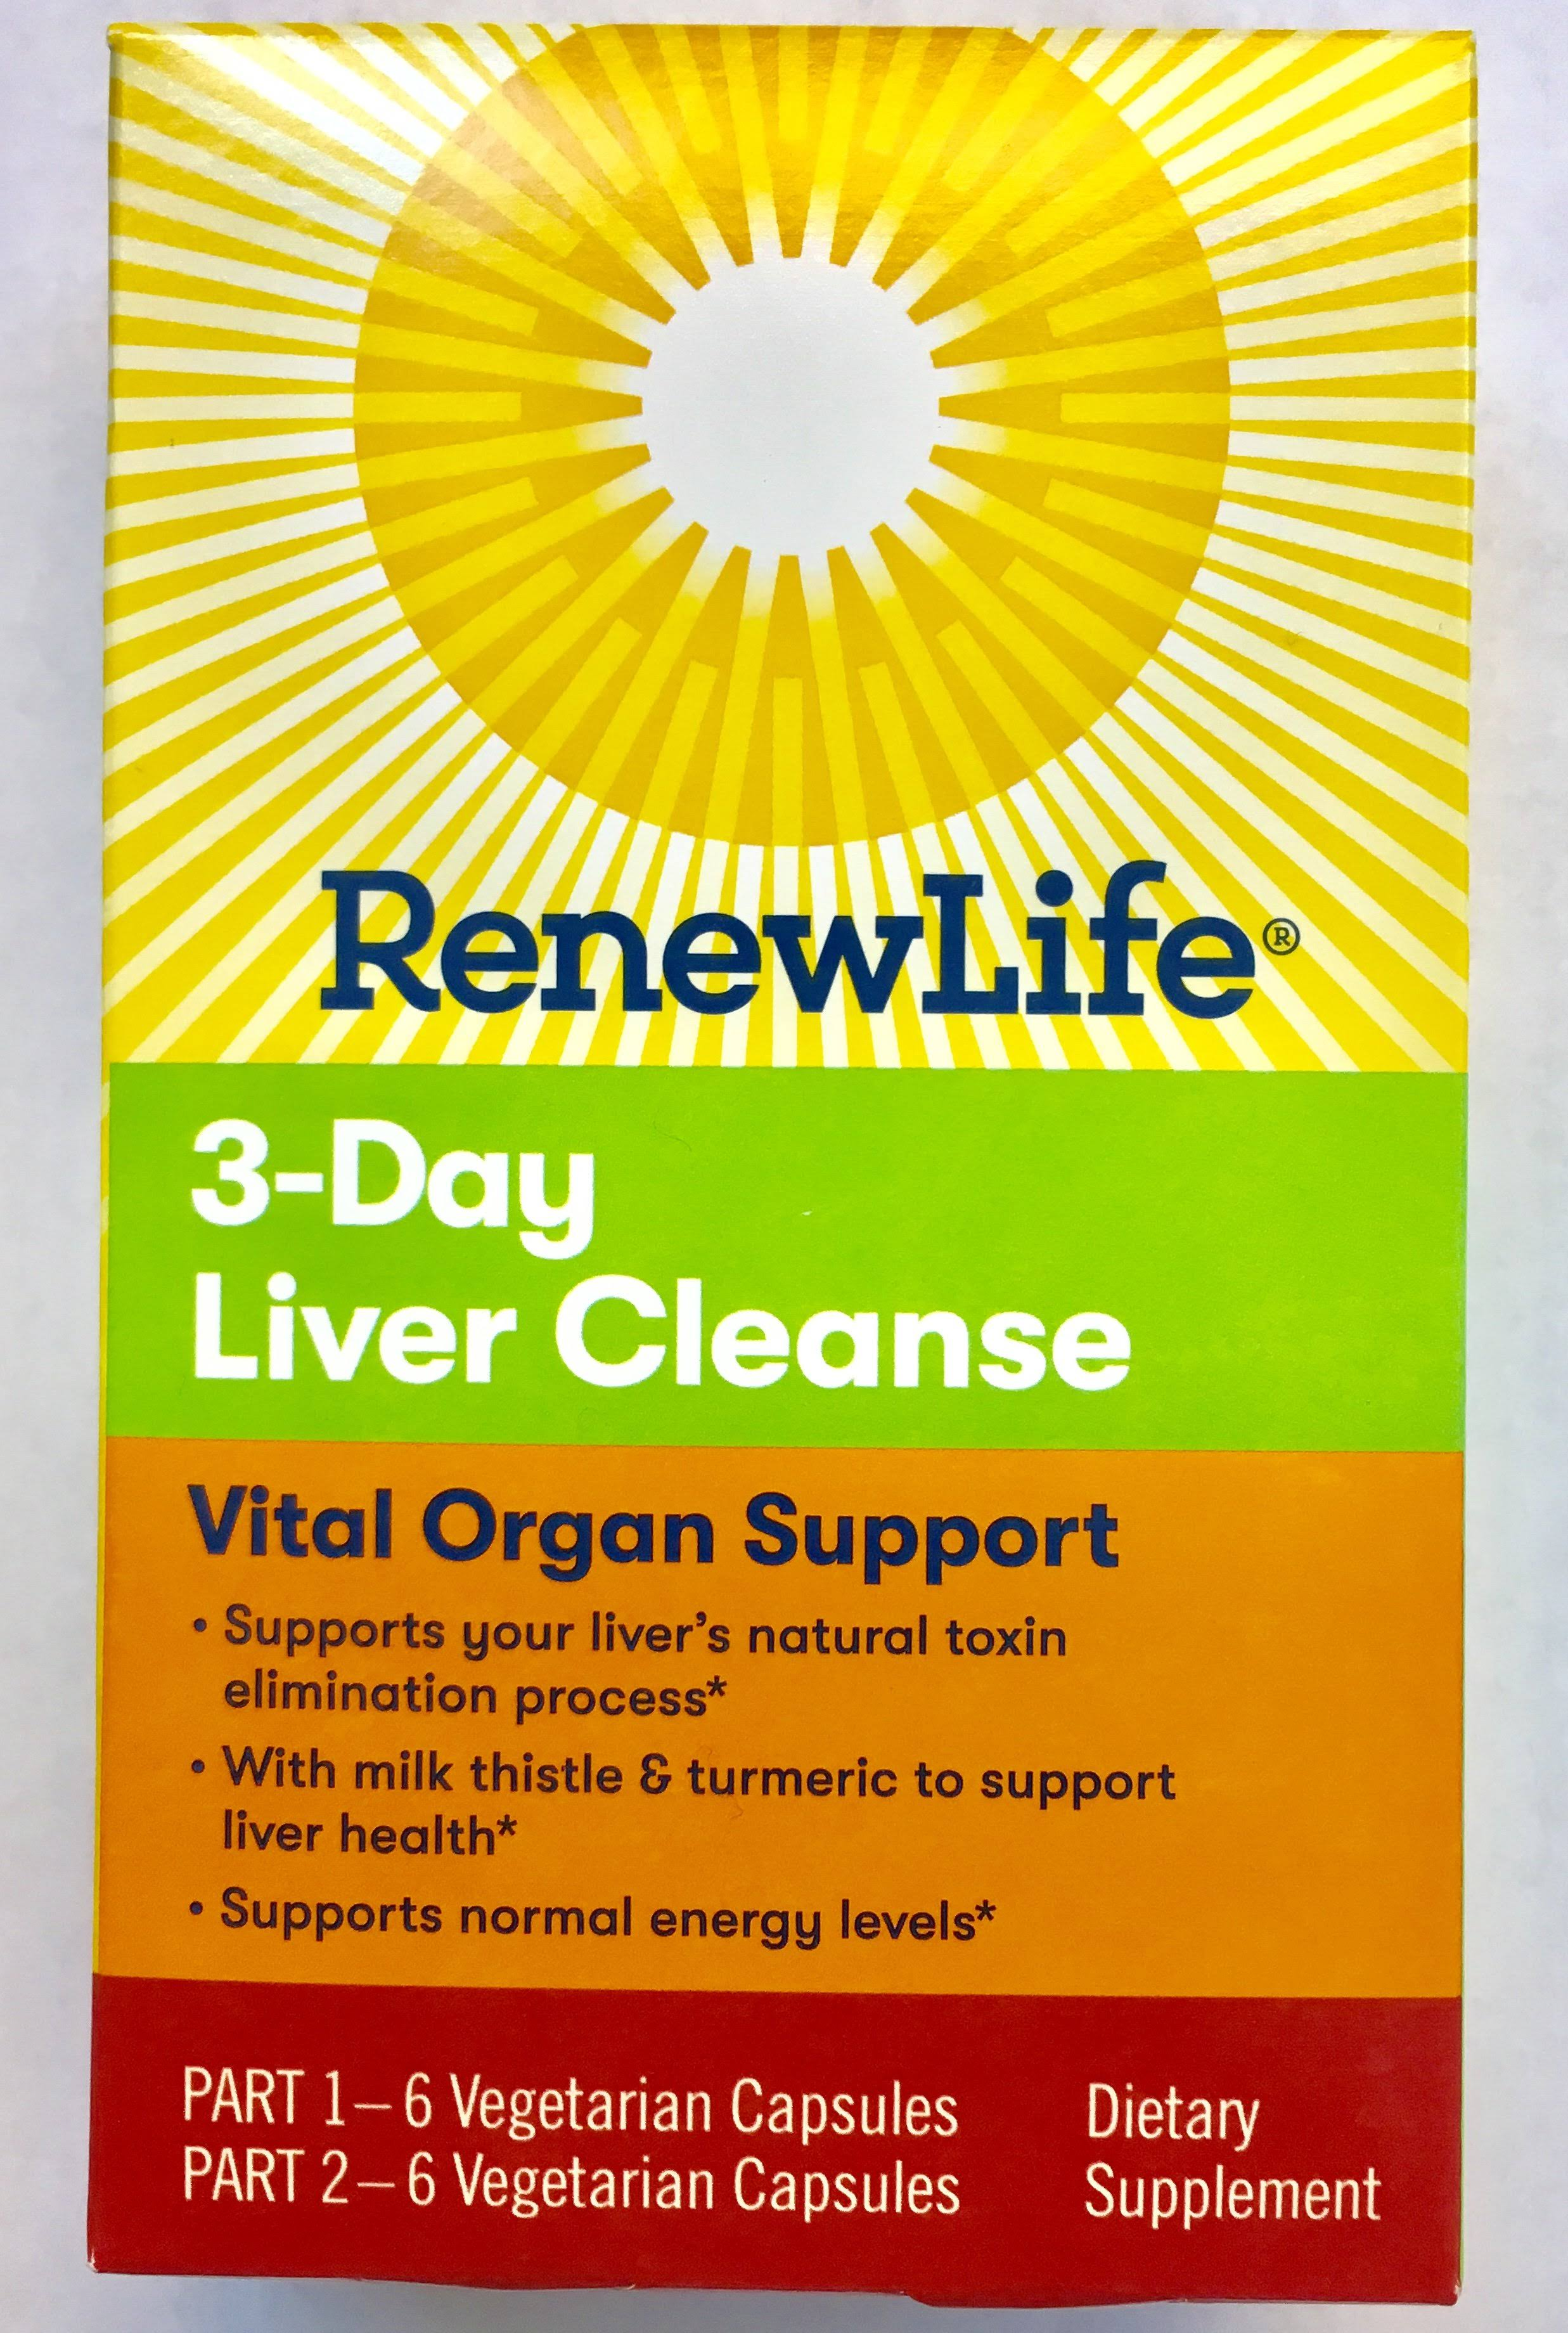 Renew Life 3 Day Liver Cleanse - Vital Organ Support